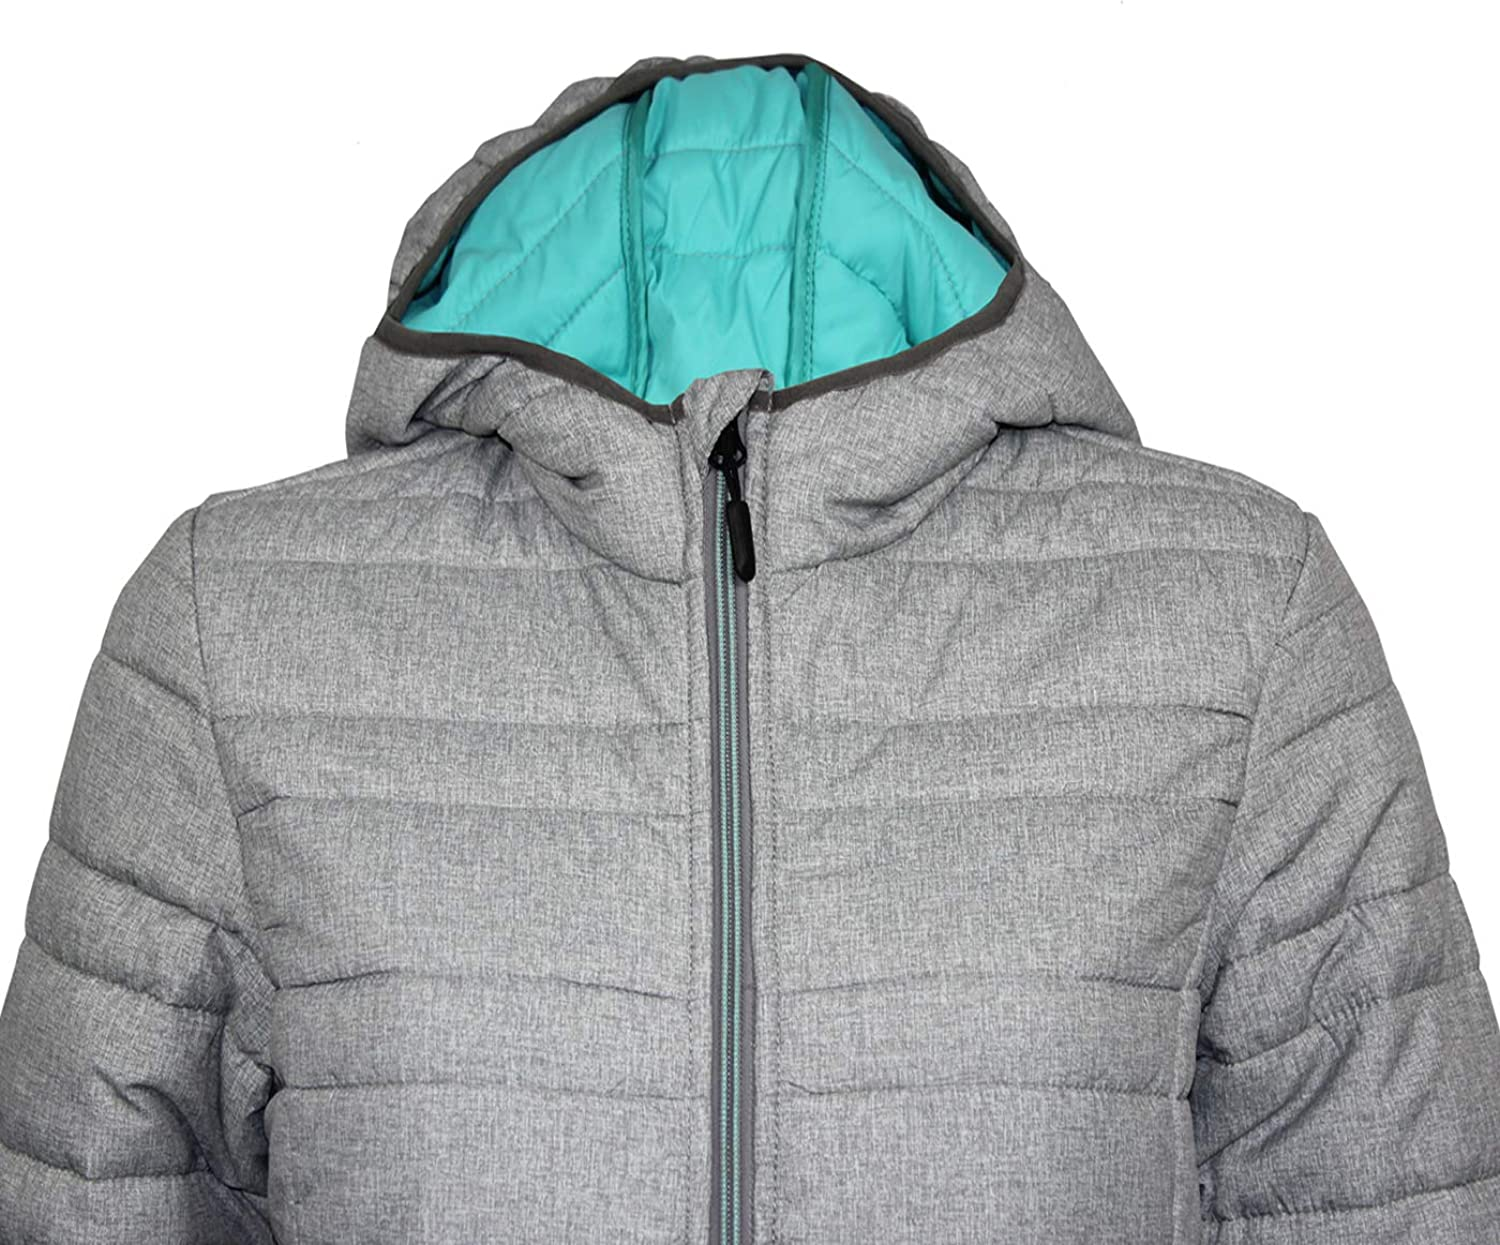 Ladies Padded Light Winter Jacket with Hoodie for Sports and Outdoor Activity